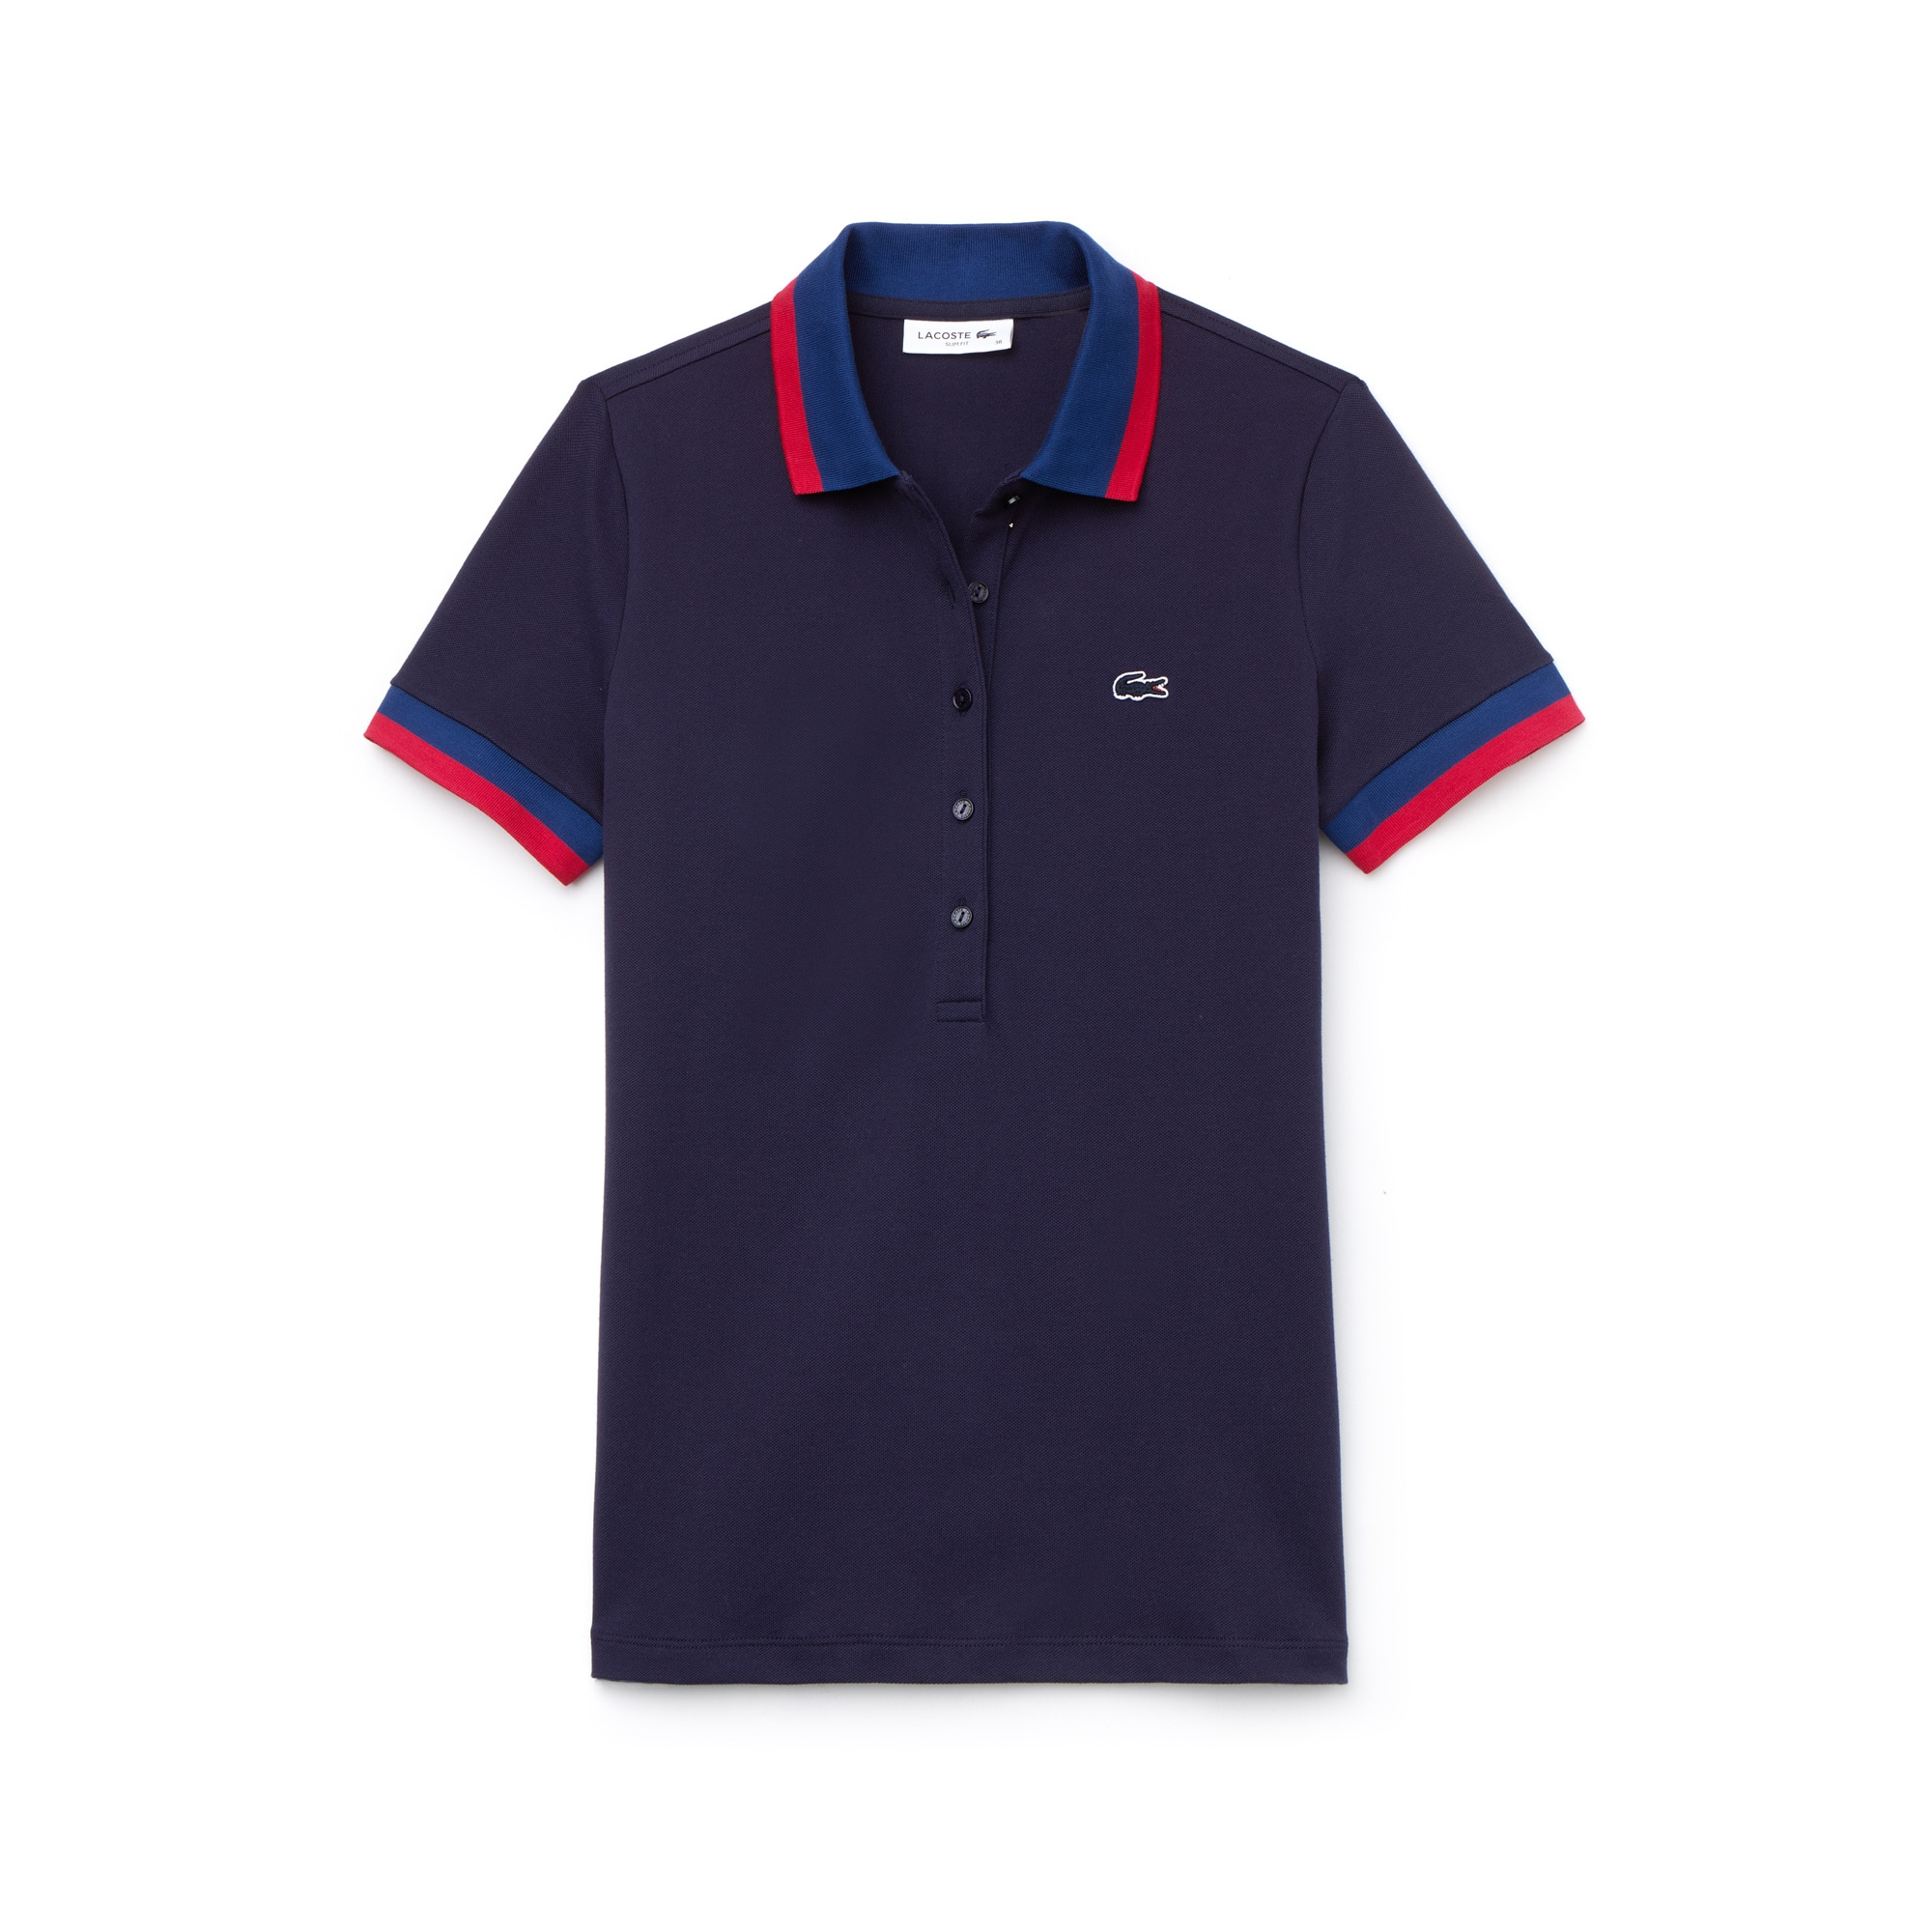 라코스테 Lacoste Womens Slim Fit Bicolor Finishes Stretch Mini Pique Polo,navy blue / navy blue / red